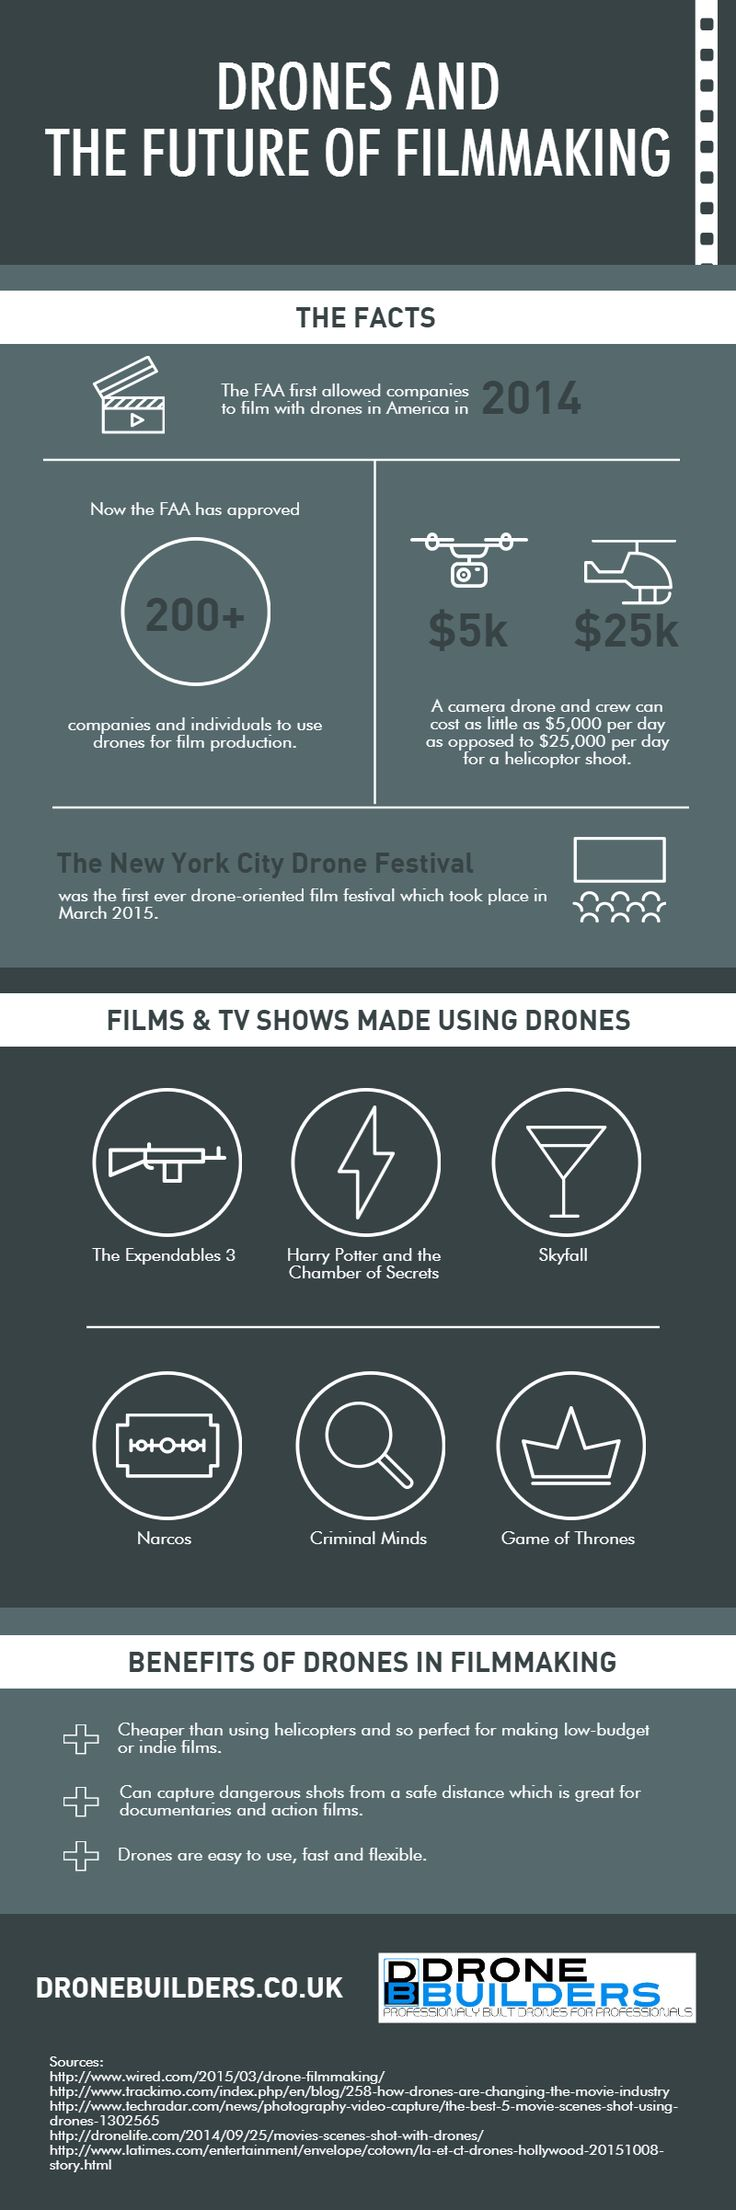 Drones and the Future of Filmmaking [Infographic]